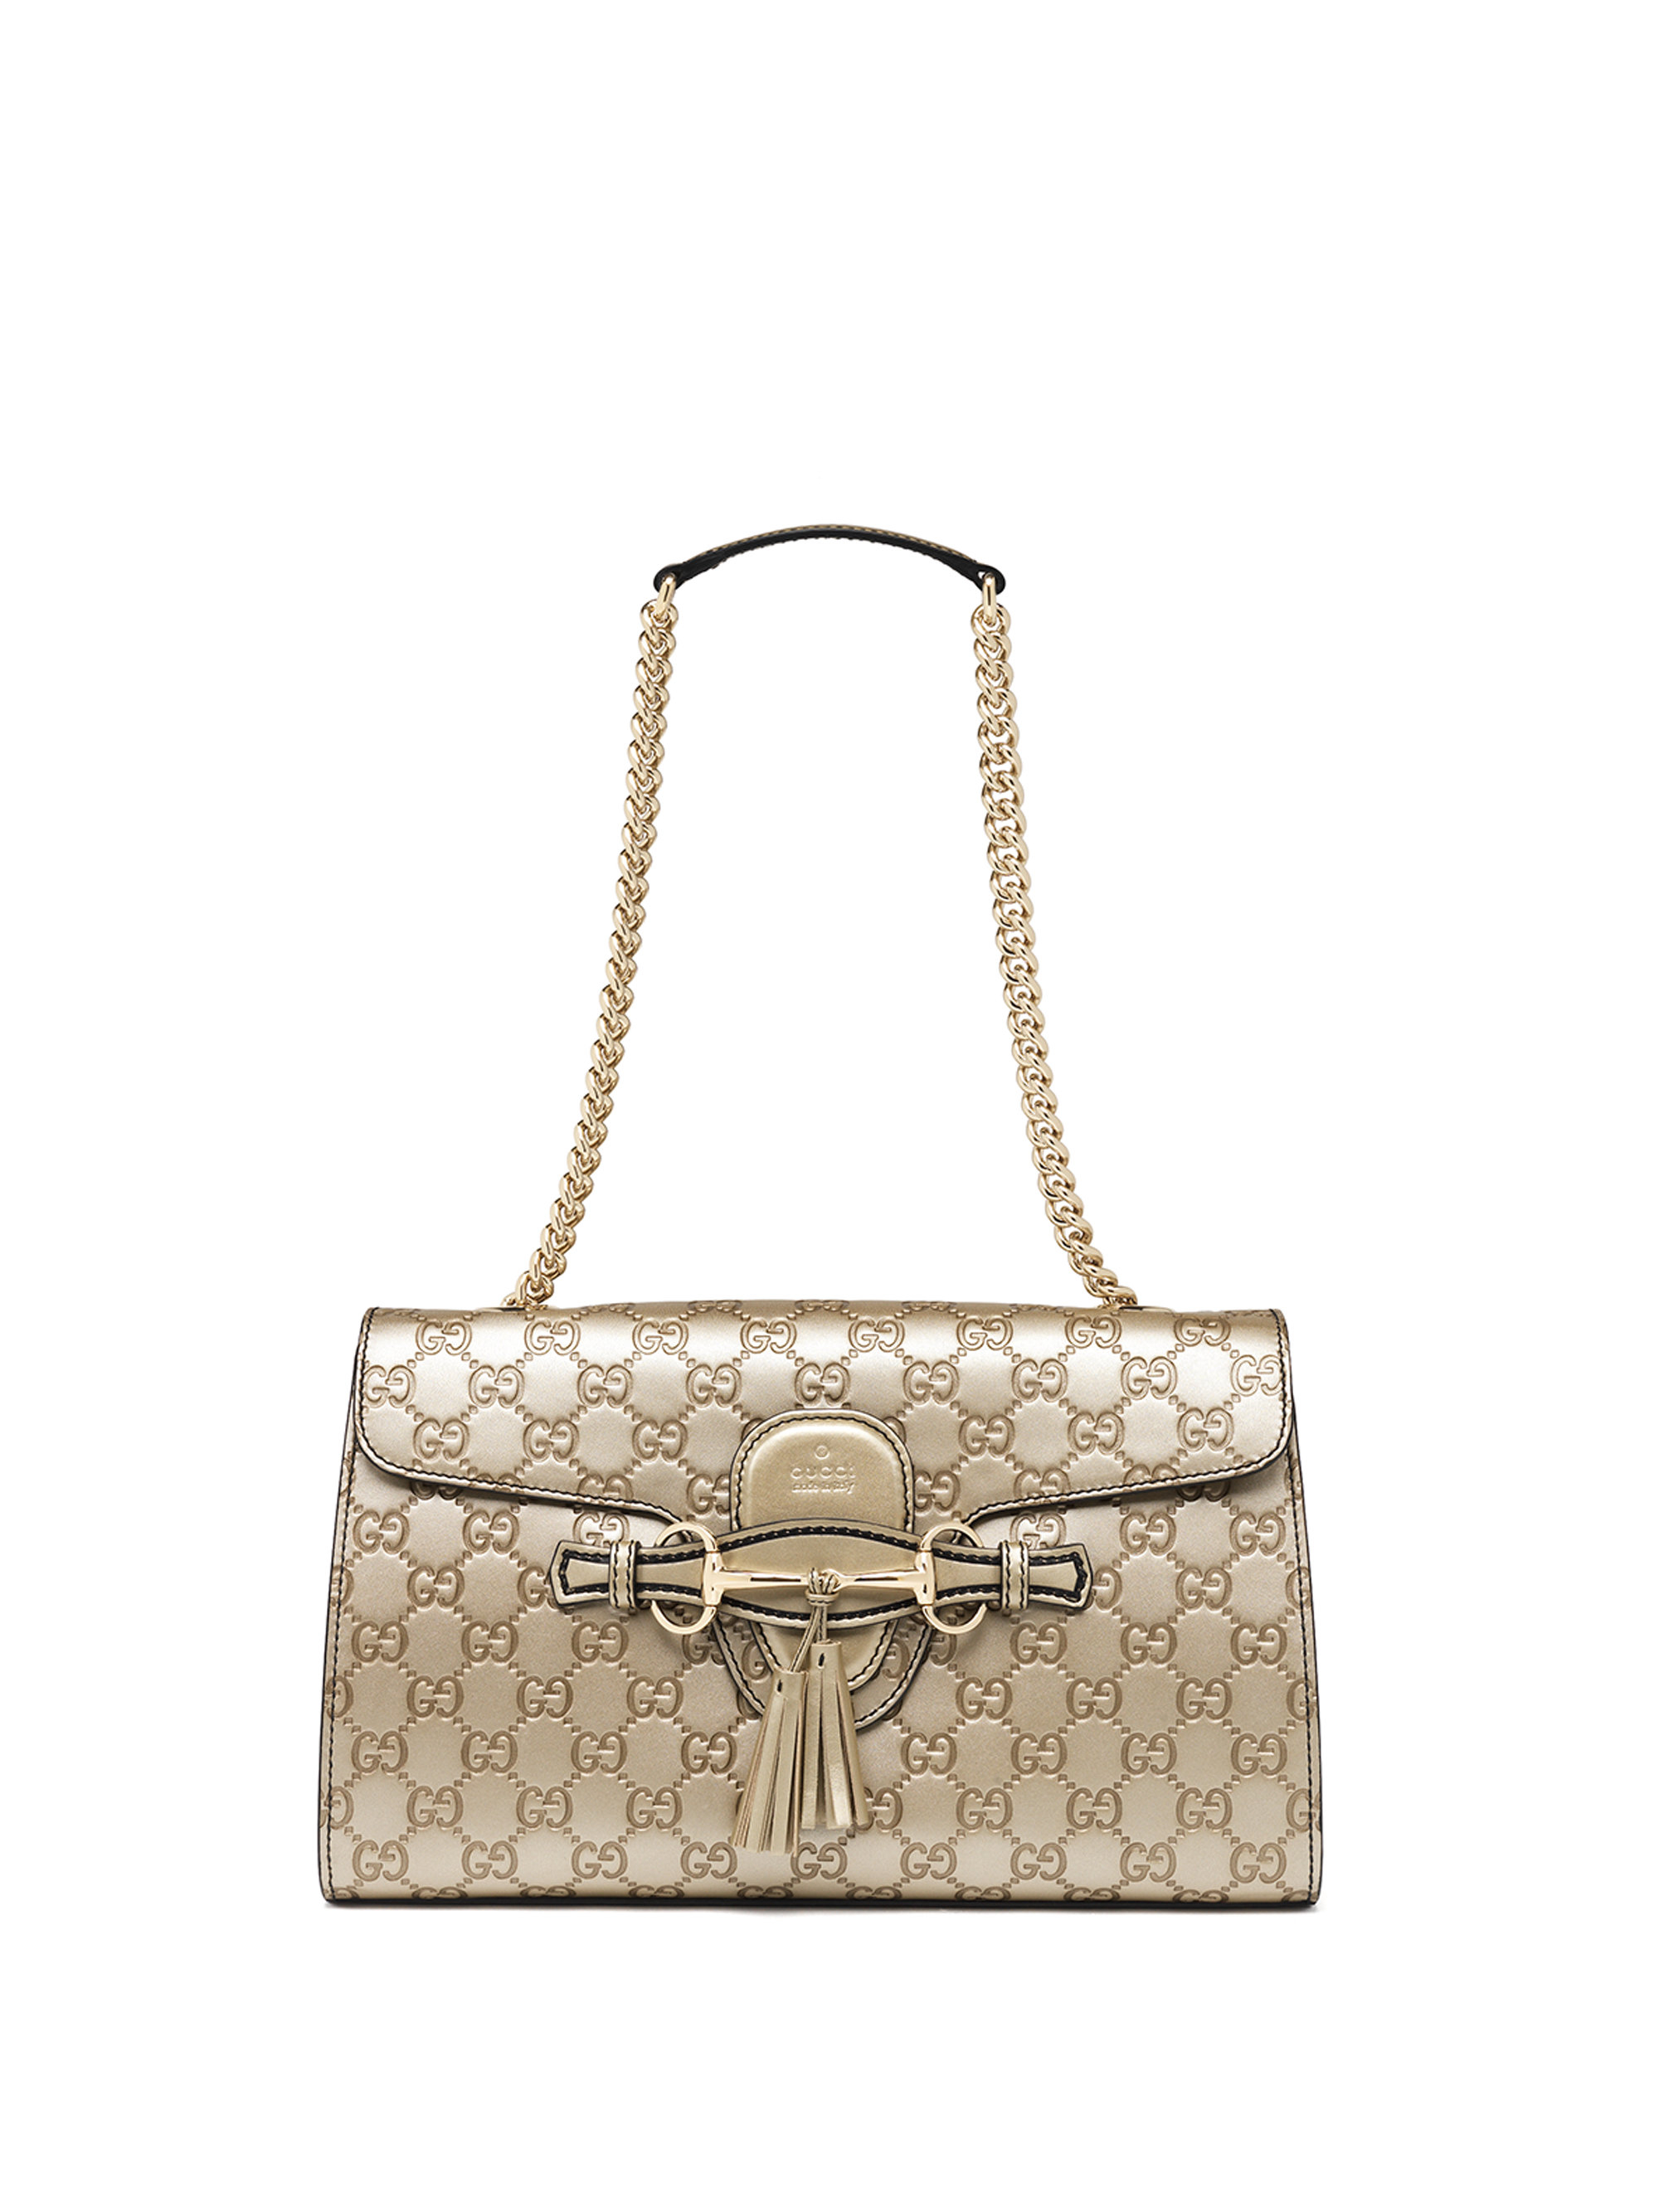 da3a07e63c8 Lyst - Gucci Emily Medium Metallic Ssima Leather Chain Shoulder Bag ...